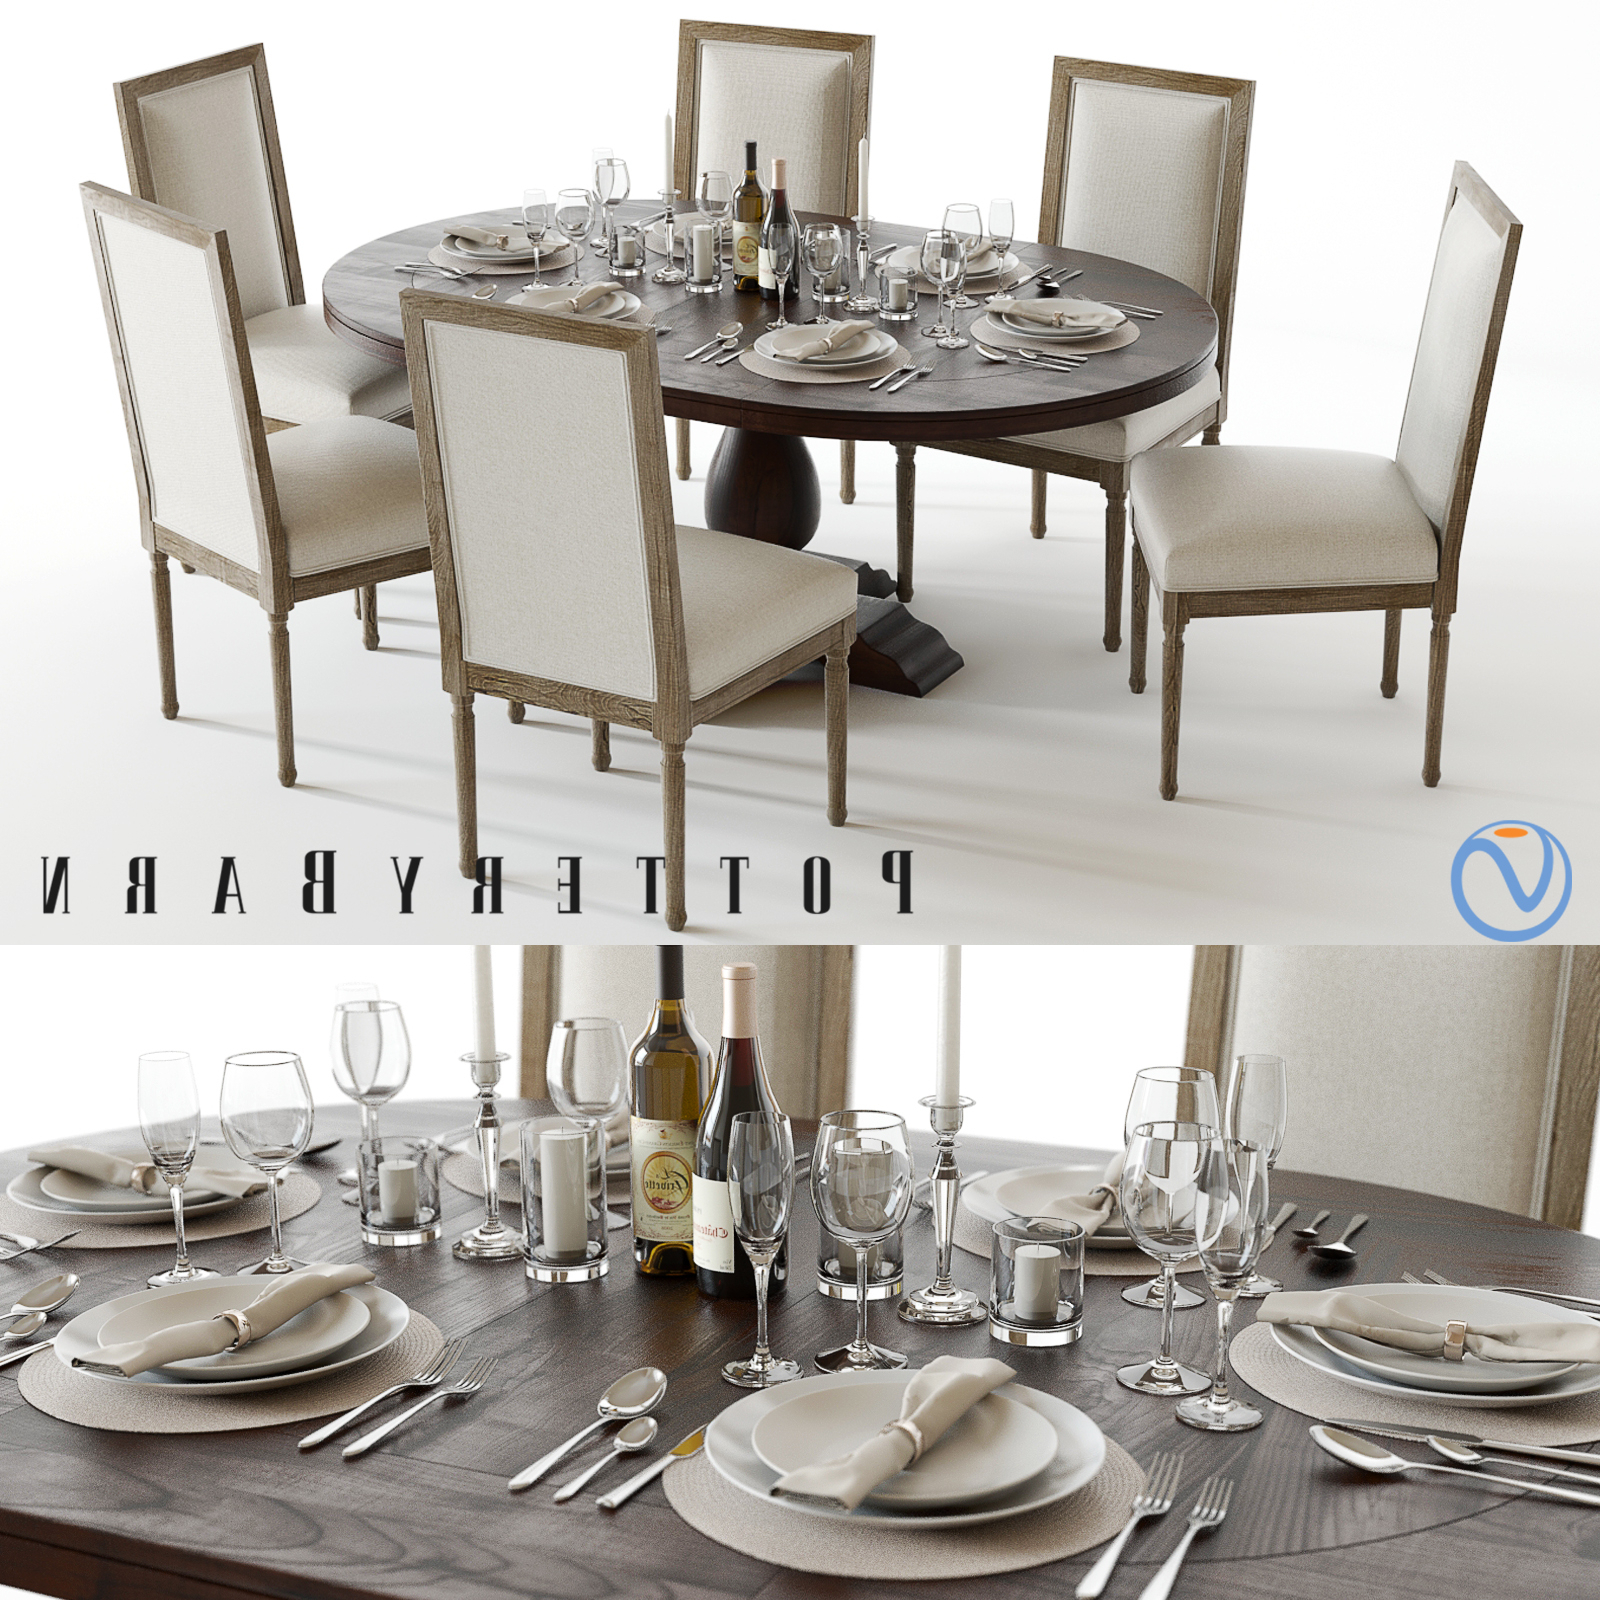 Widely Used Pottery Barn Lorraine Pedestal Table Ethan Allen Locations With Regard To Hewn Oak Lorraine Extending Dining Tables (View 13 of 25)